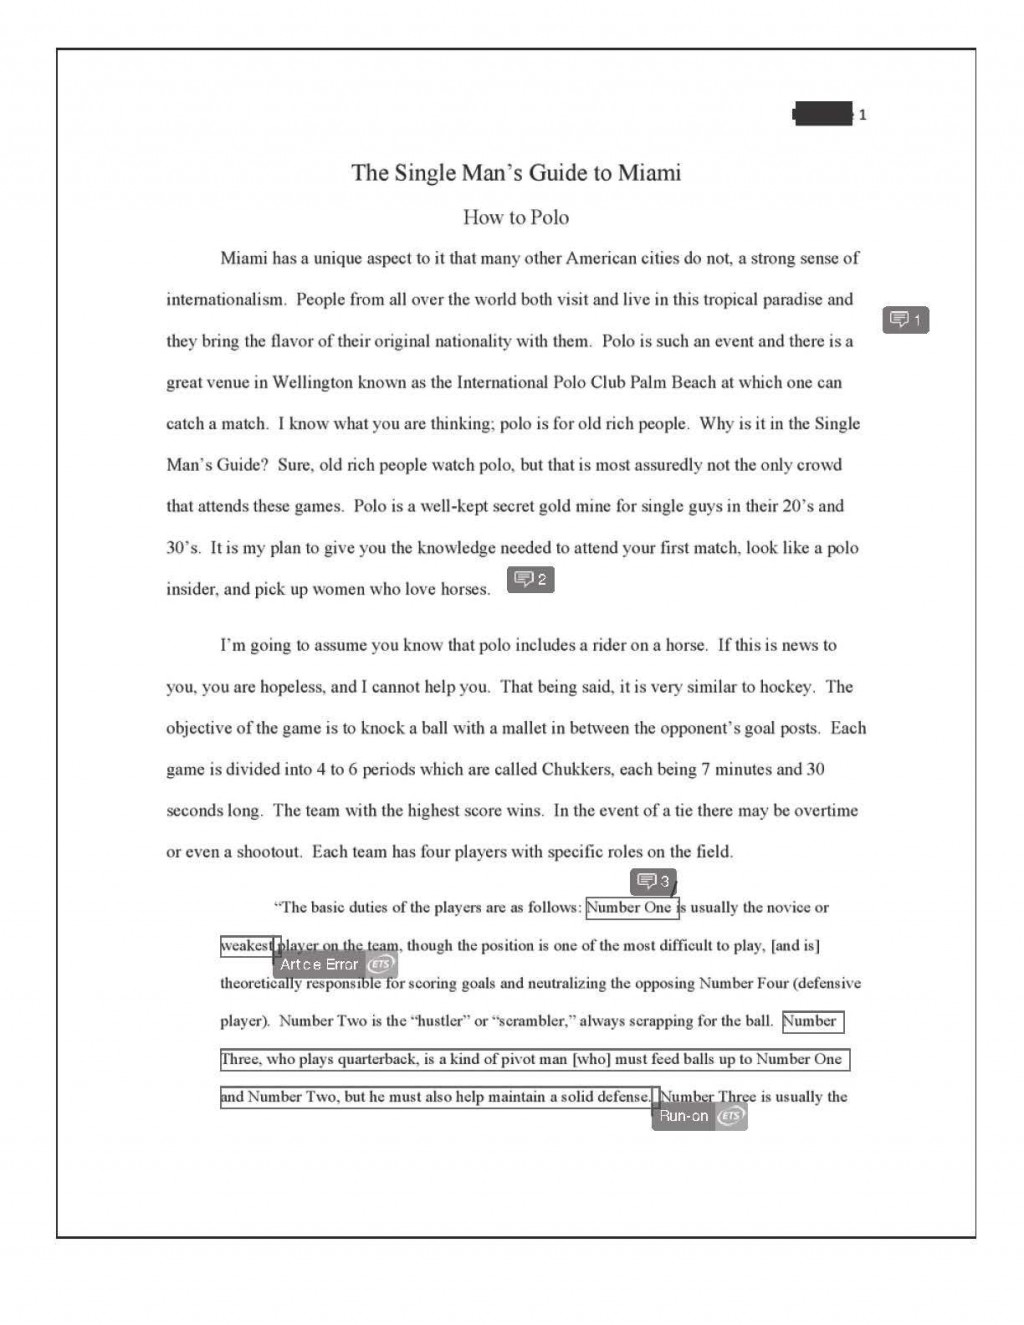 007 Example Of An Essay About Education Examplesative Essays Writing Utopia Instructionative Final How To Polo Redacted P Quiz Prewriting Quizlet Write Incredible Informative Conclusion Ppt 4th Grade Large